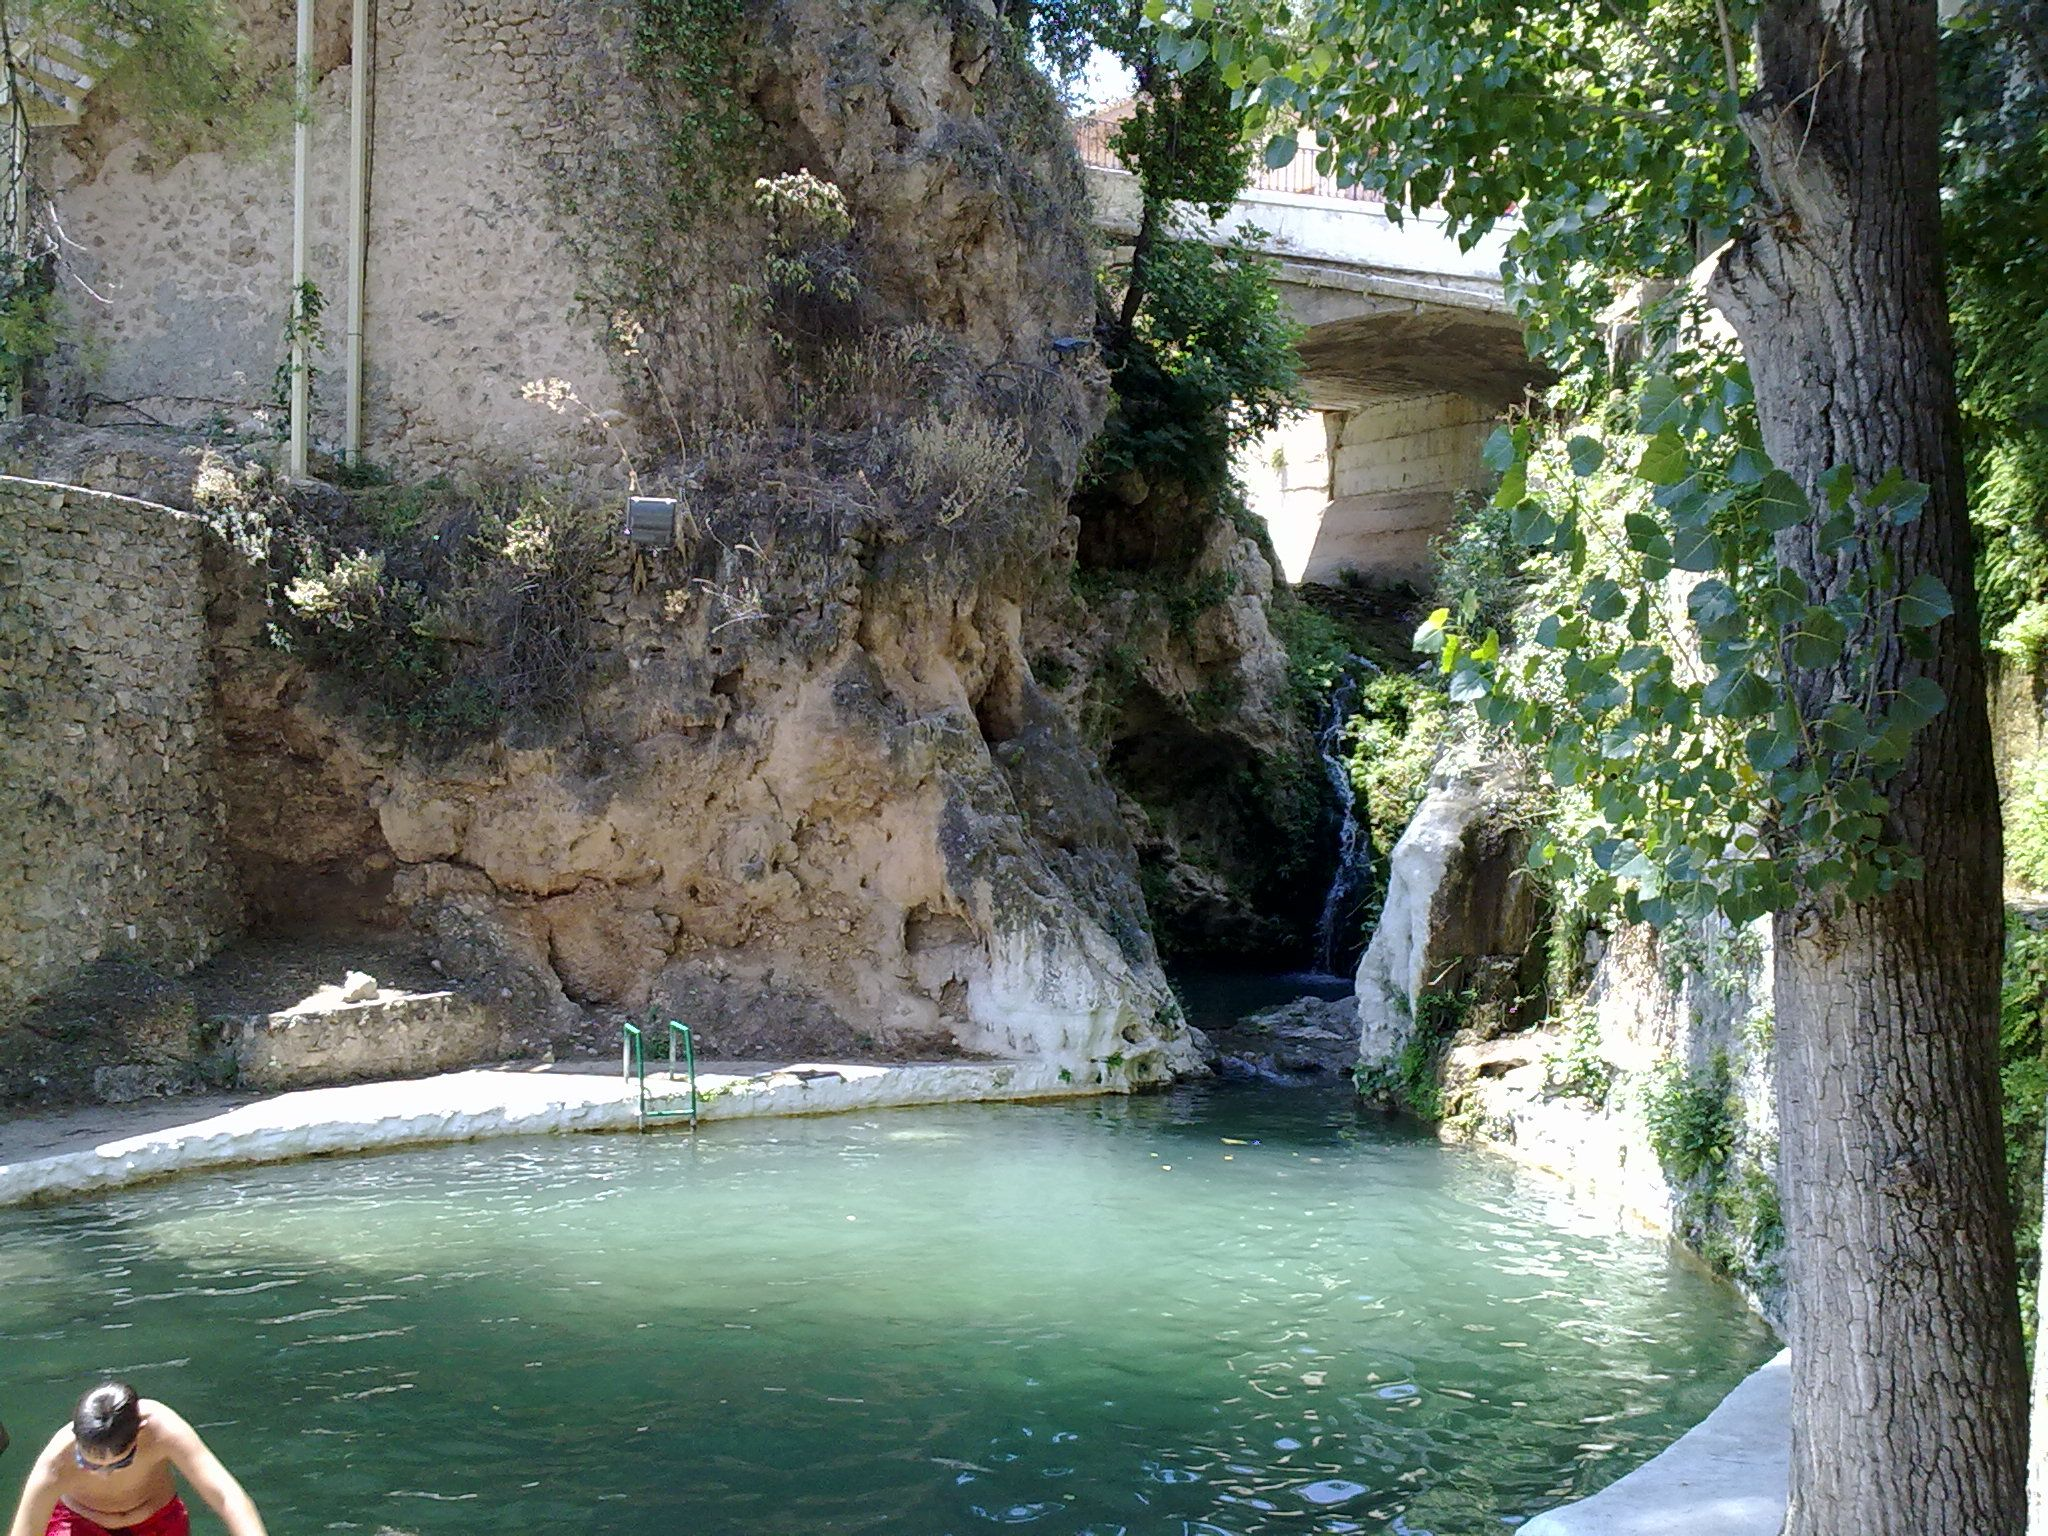 Piscinas Naturales Sierra Madrid Letur Albacete Spain Natural Pools Pinterest